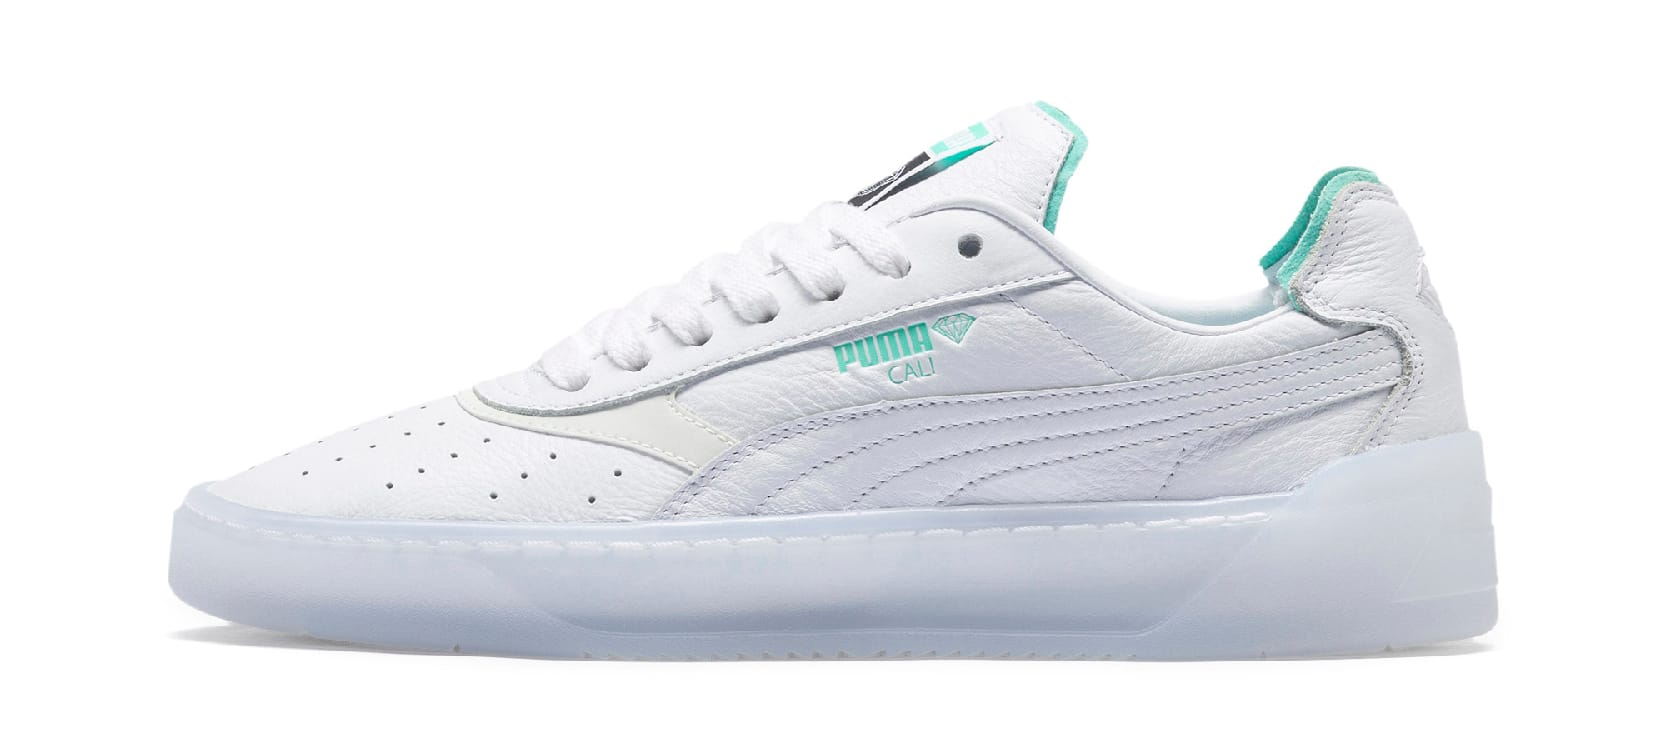 Diamond Supply Co. x Puma Cali-0 369399 (Lateral)